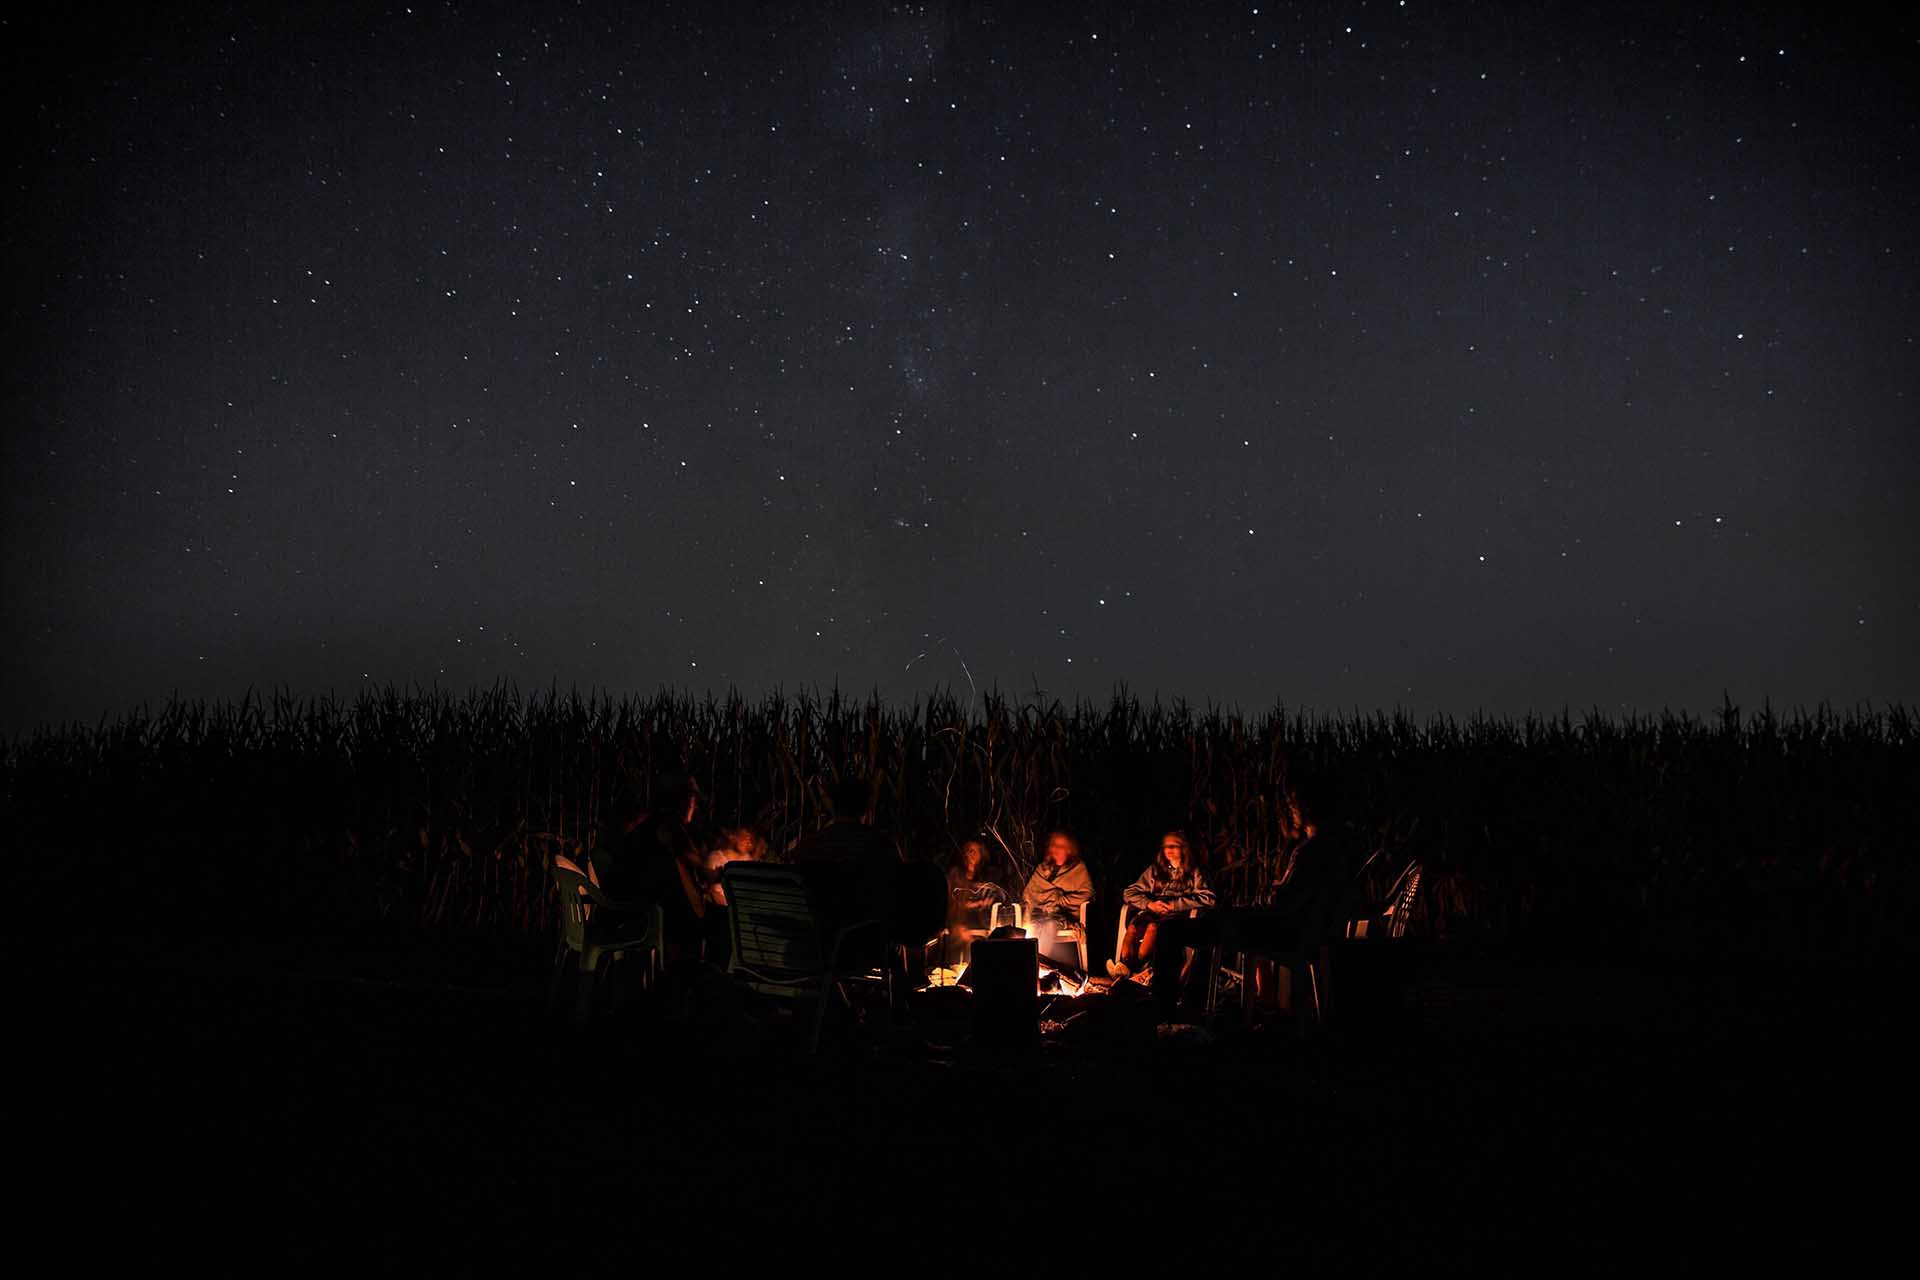 people around a campfire under the stars